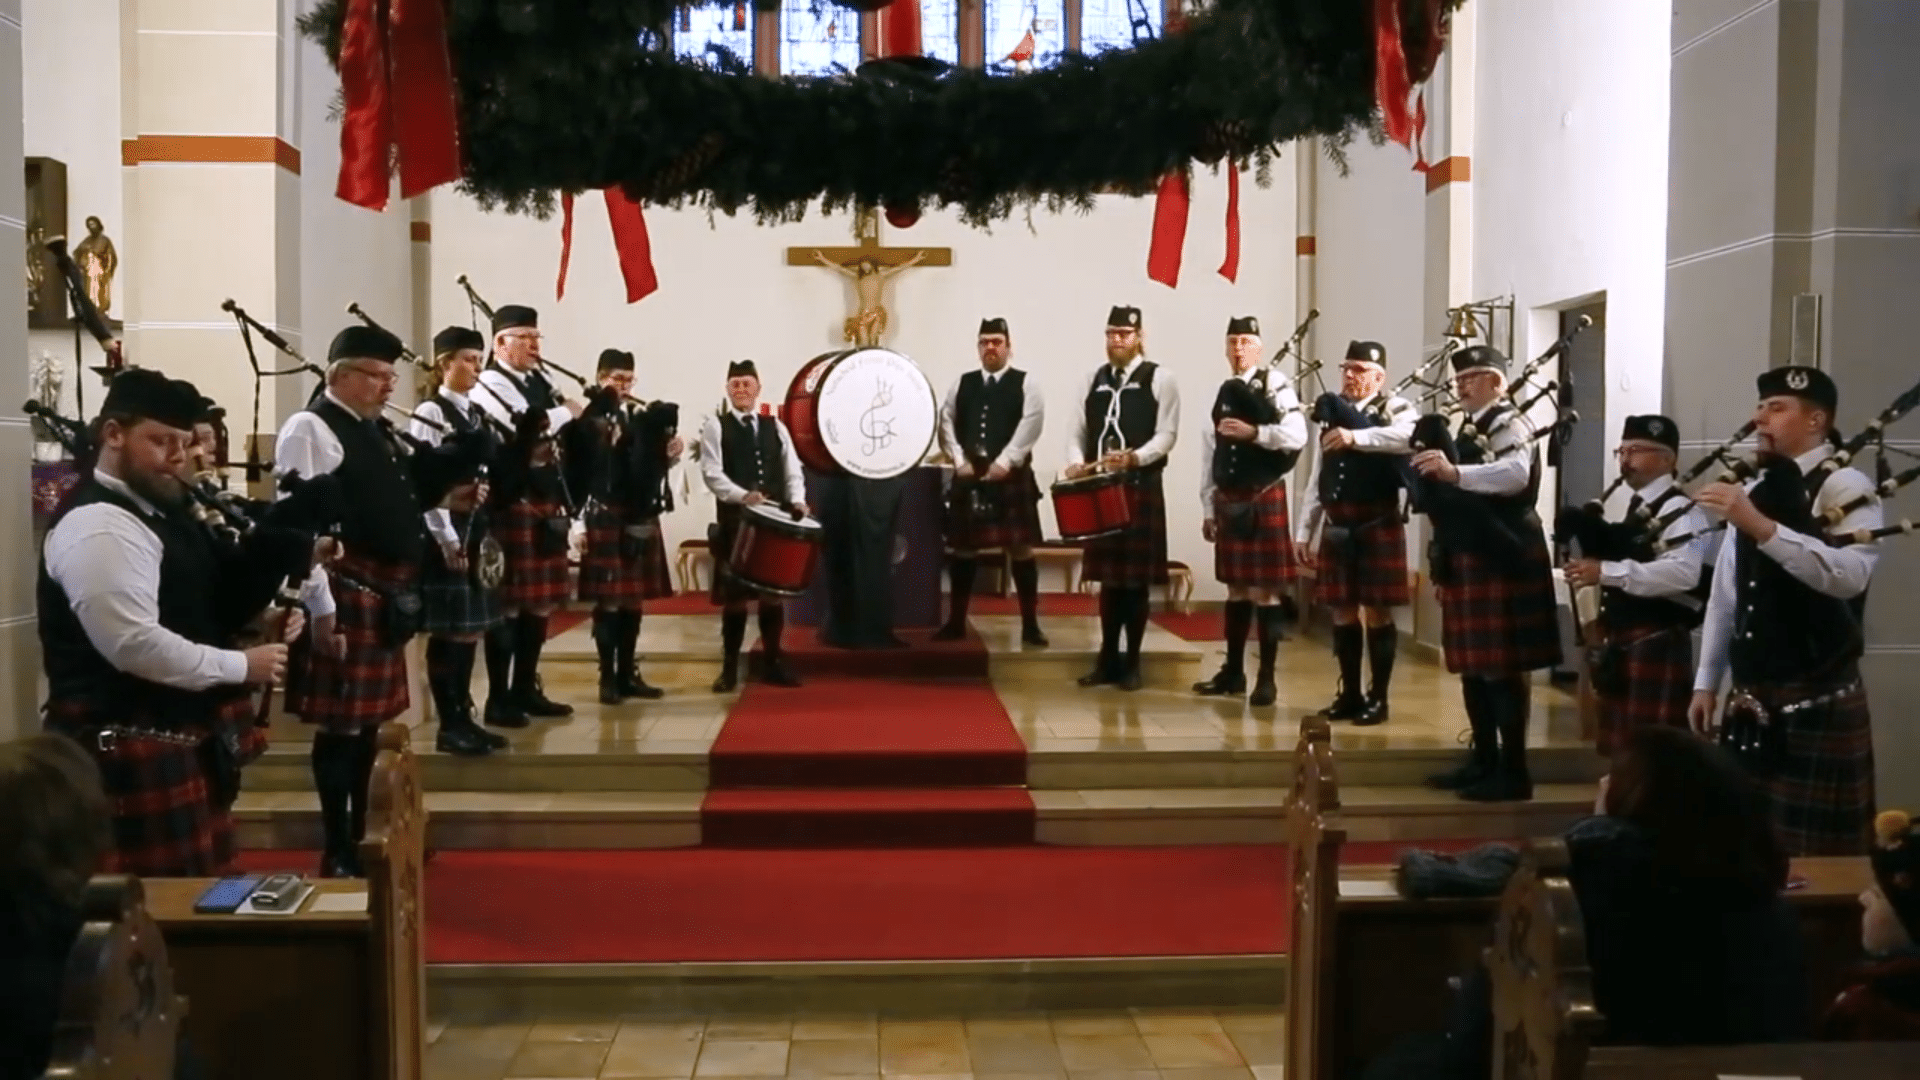 Nutscheid Forest Pipeband